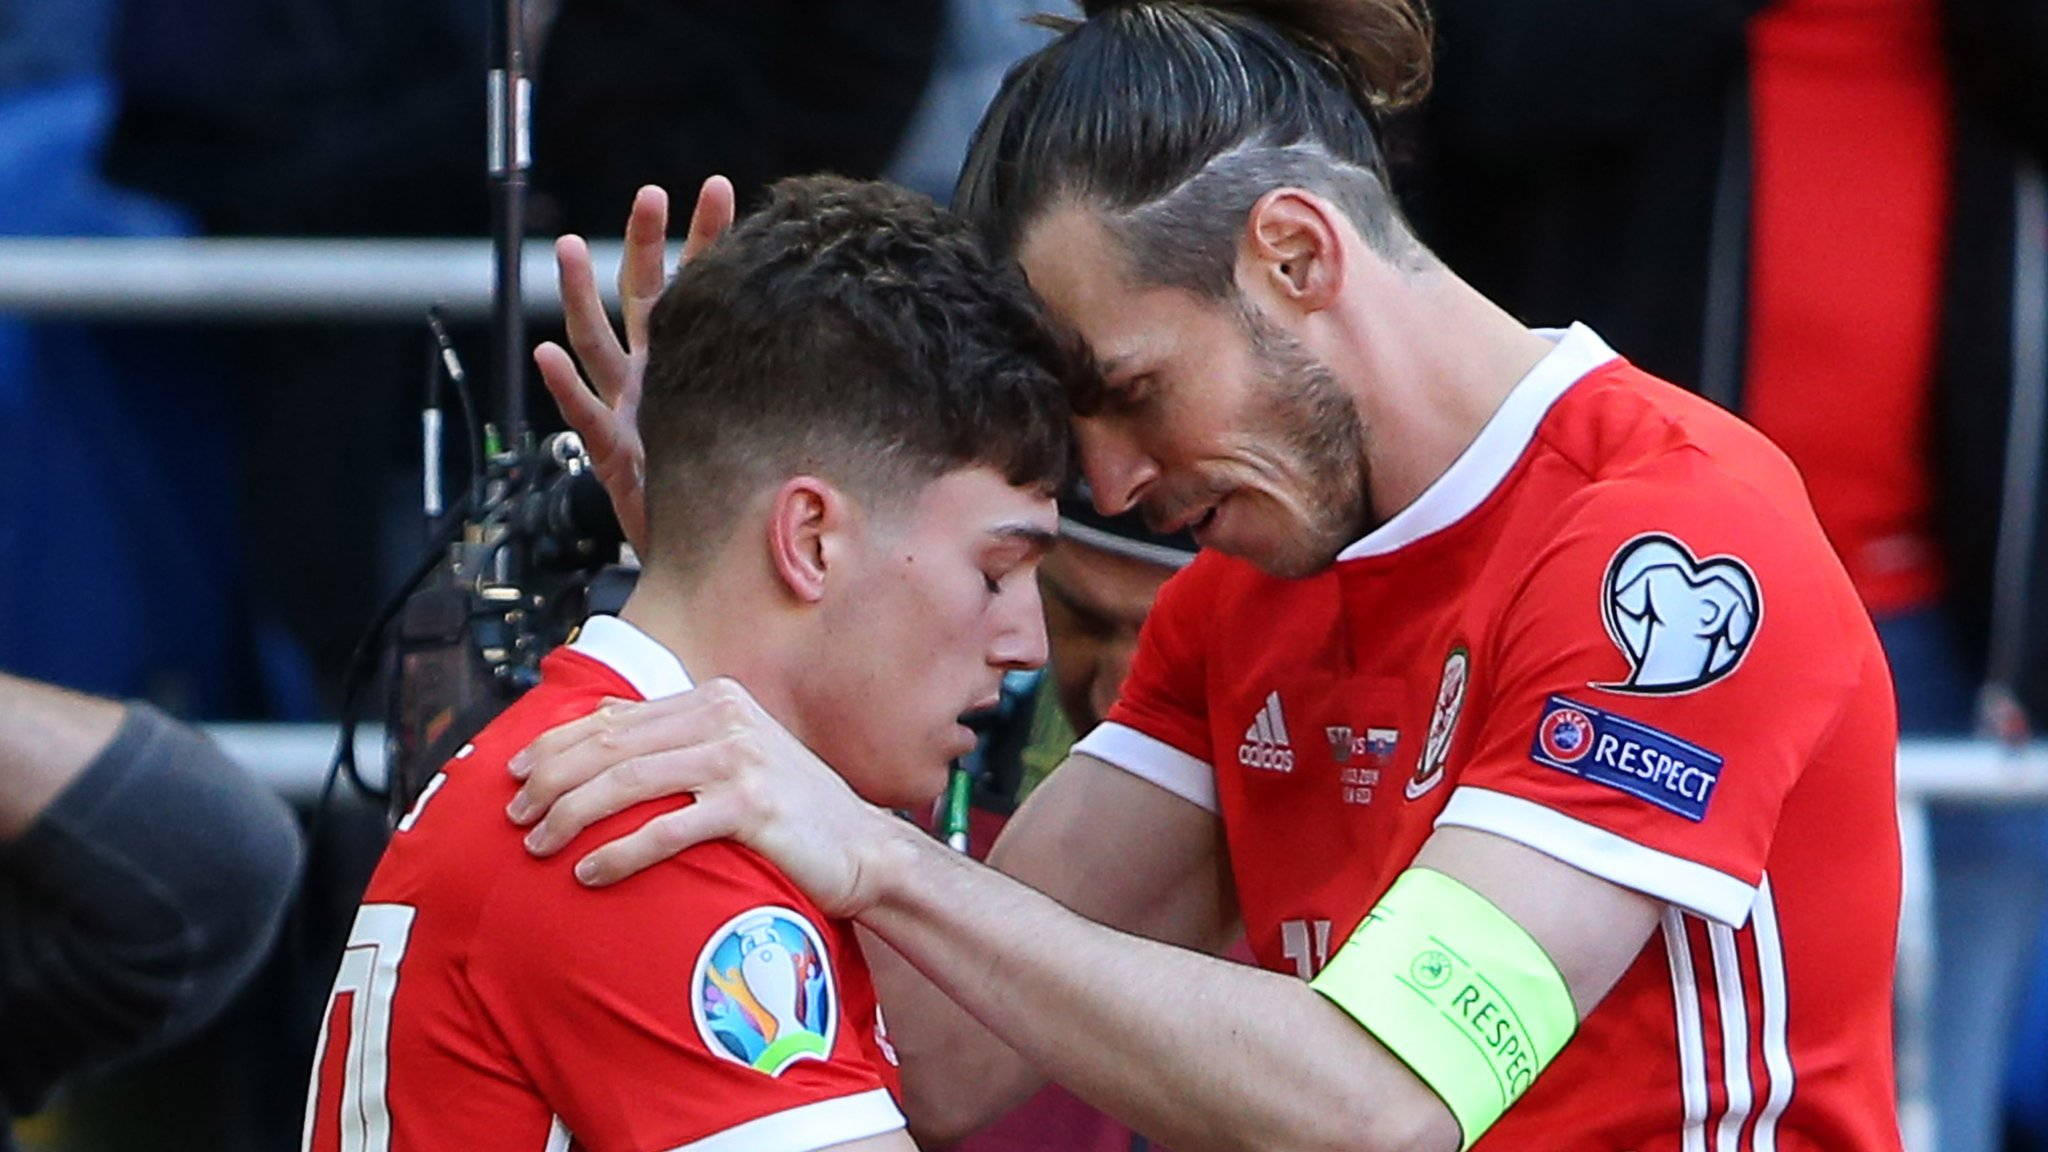 Daniel James: Wales winger has 'learnt' from Ryan Giggs & Gareth Bale